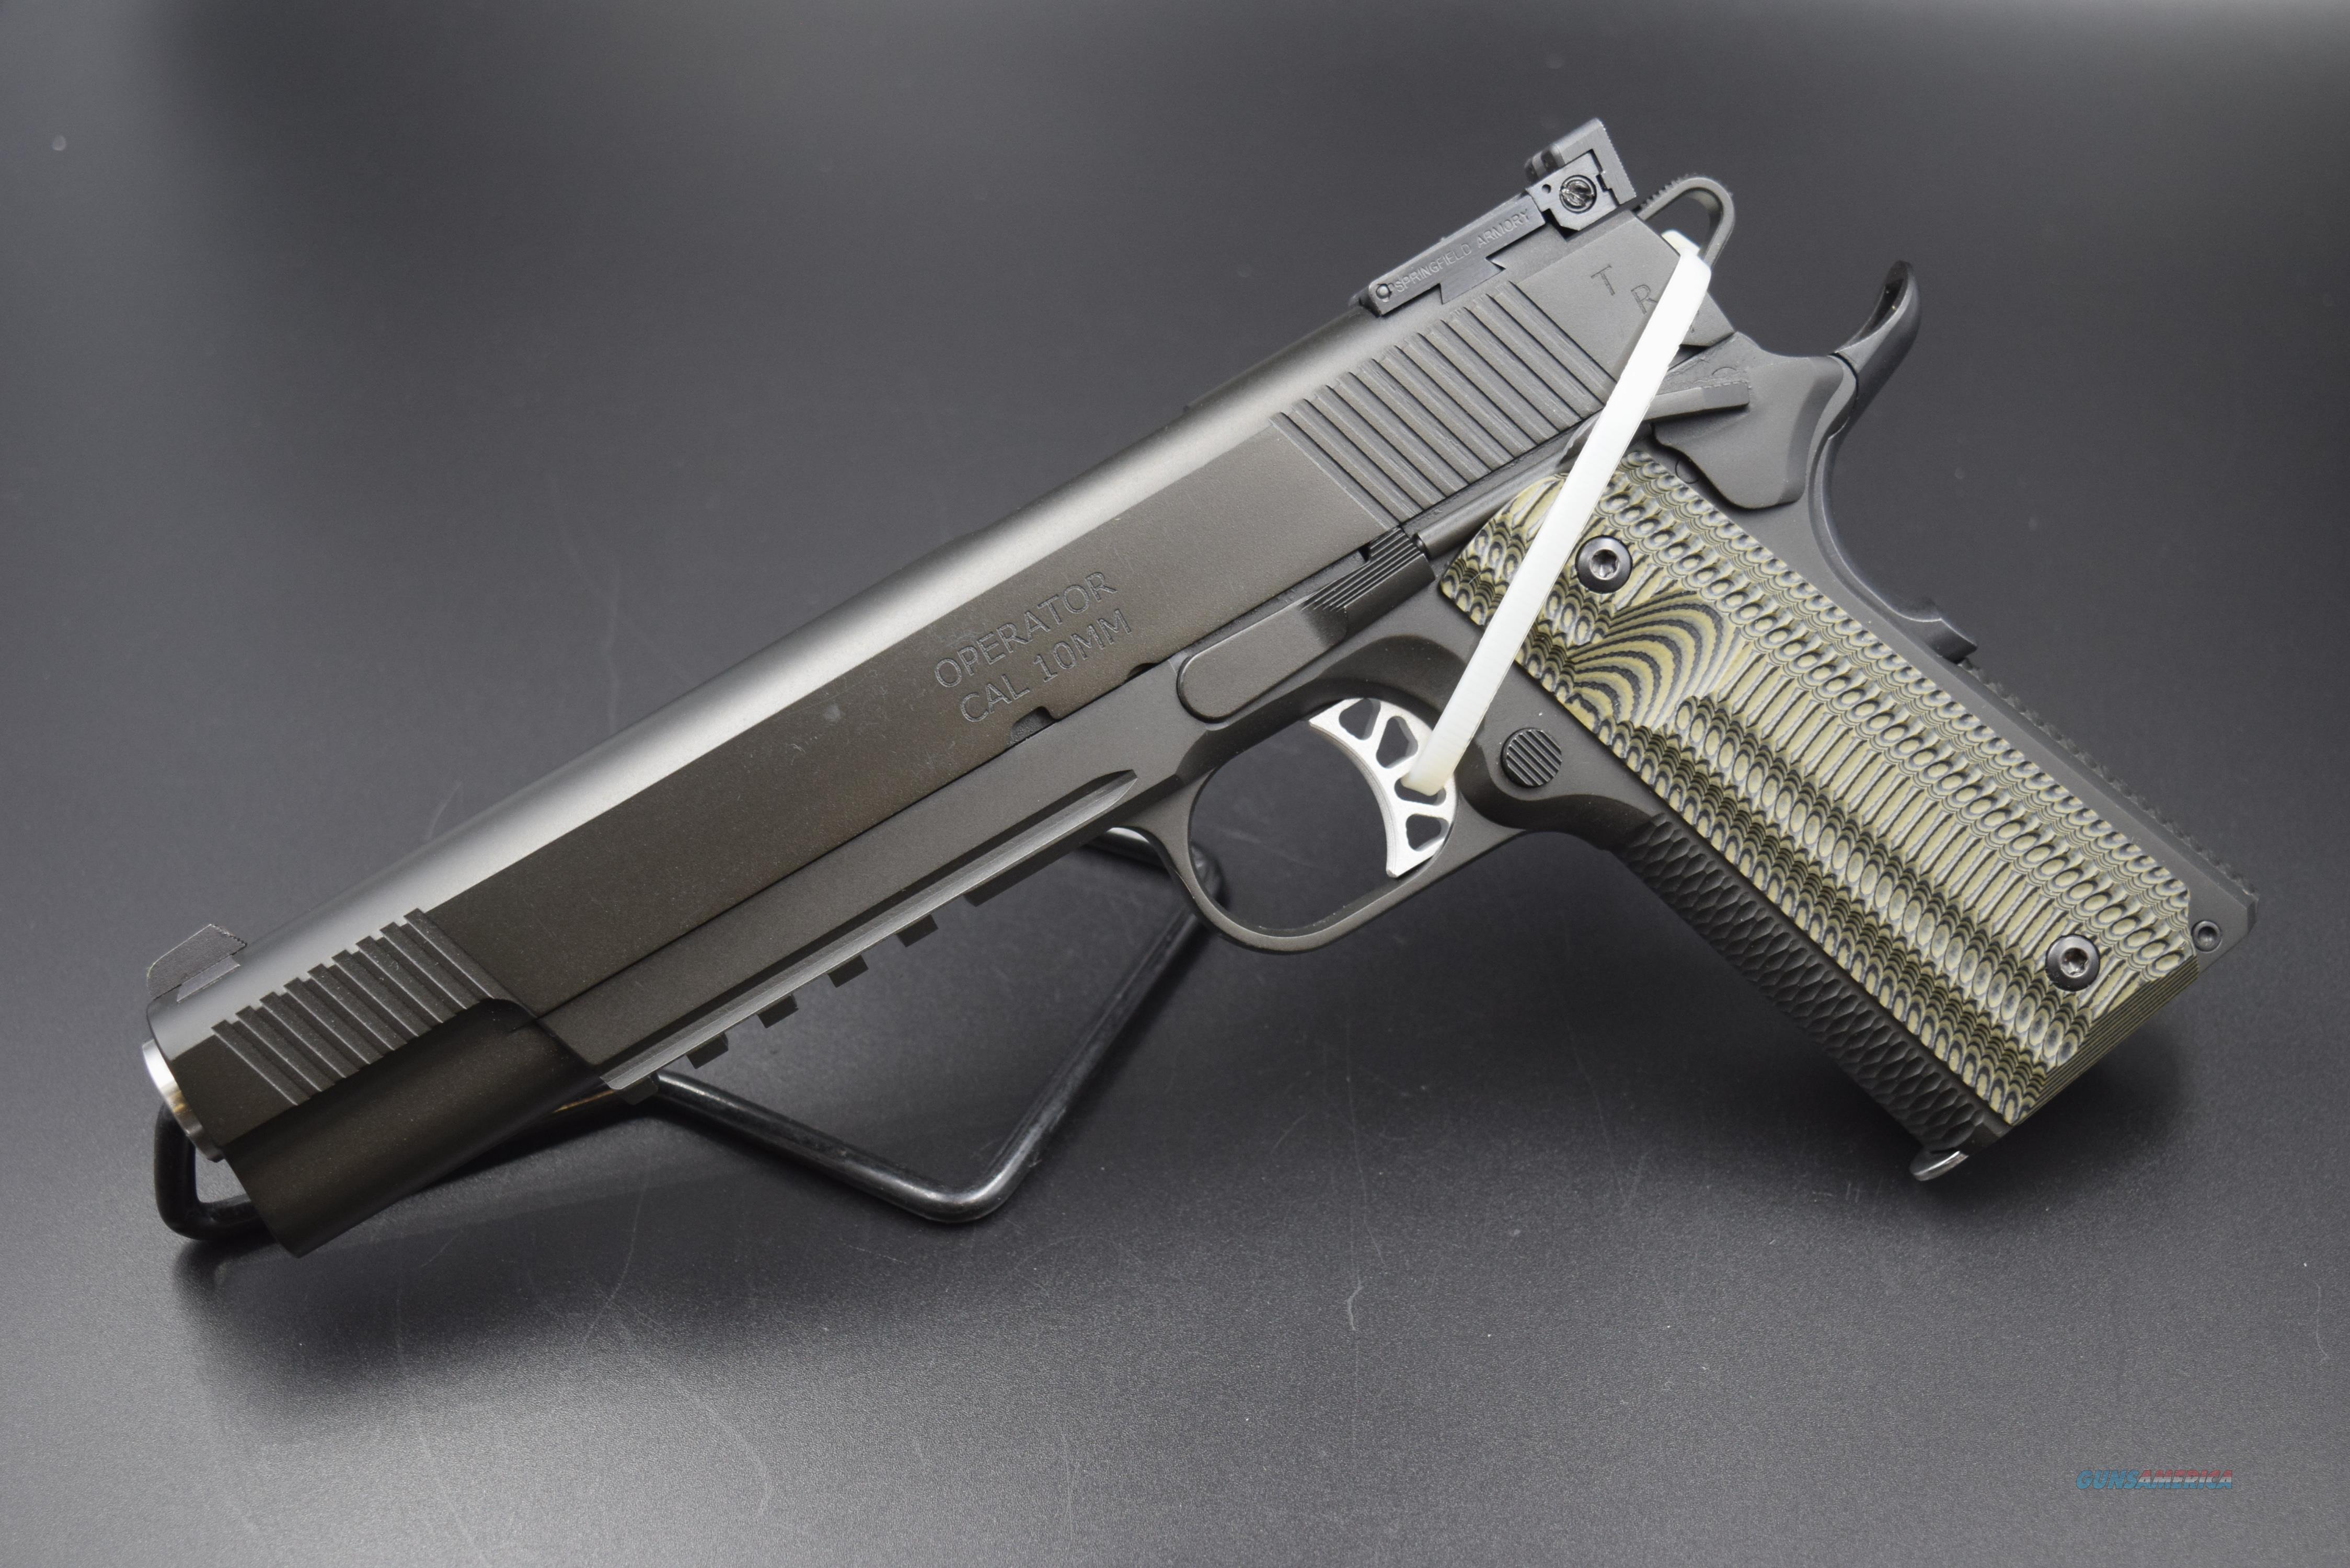 SPRINGFIELD ARMORY LONG-SLIDE (6-INCH) TRP OPERATOR in 10 MM - REDUCED!  Guns > Pistols > Springfield Armory Pistols > 1911 Type